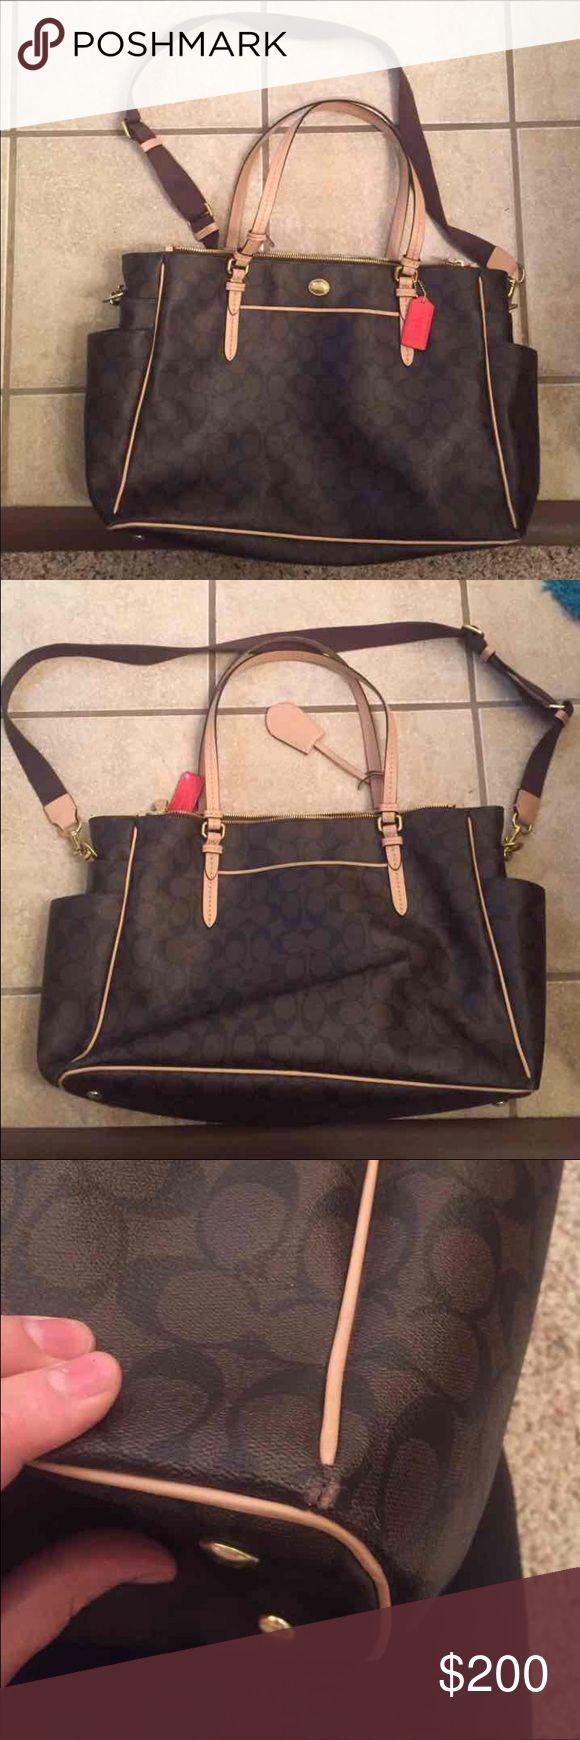 Final price Coach diaper bag Gently used COACH diaper bag. Coach Bags Baby Bags